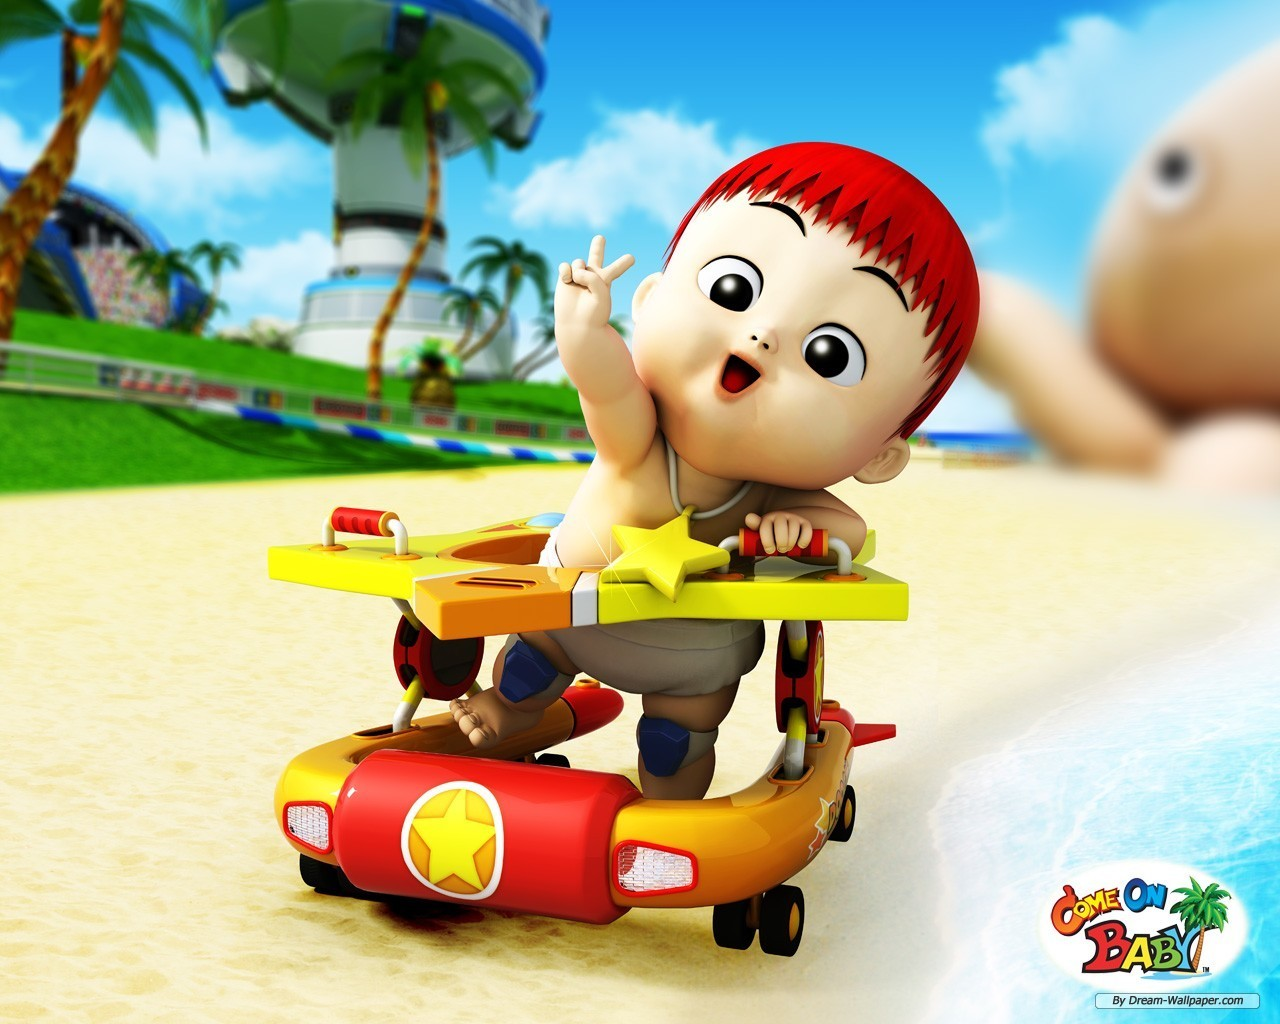 Funny Cartoons For Babies 21 Hd Wallpaper